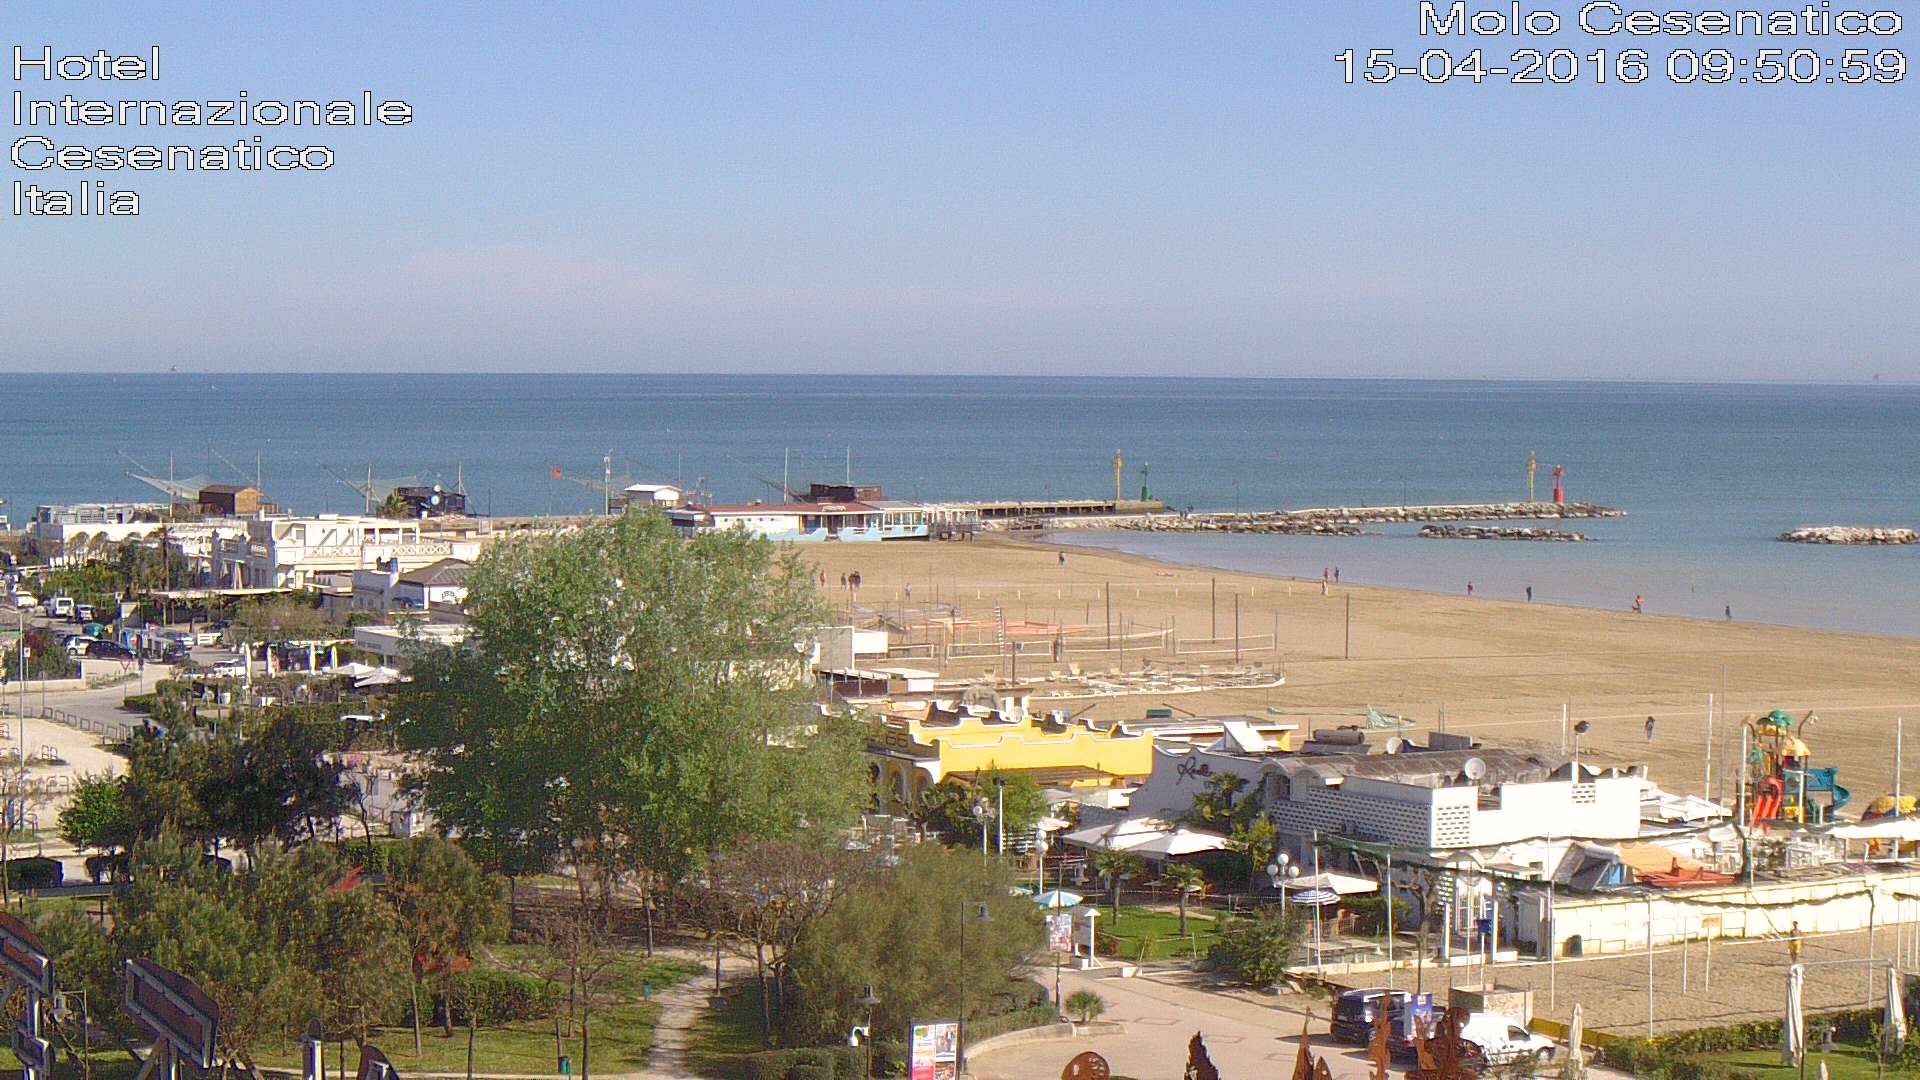 Webcam cesenatico private beach hotel internazionale - Bagno palm beach pinarella ...